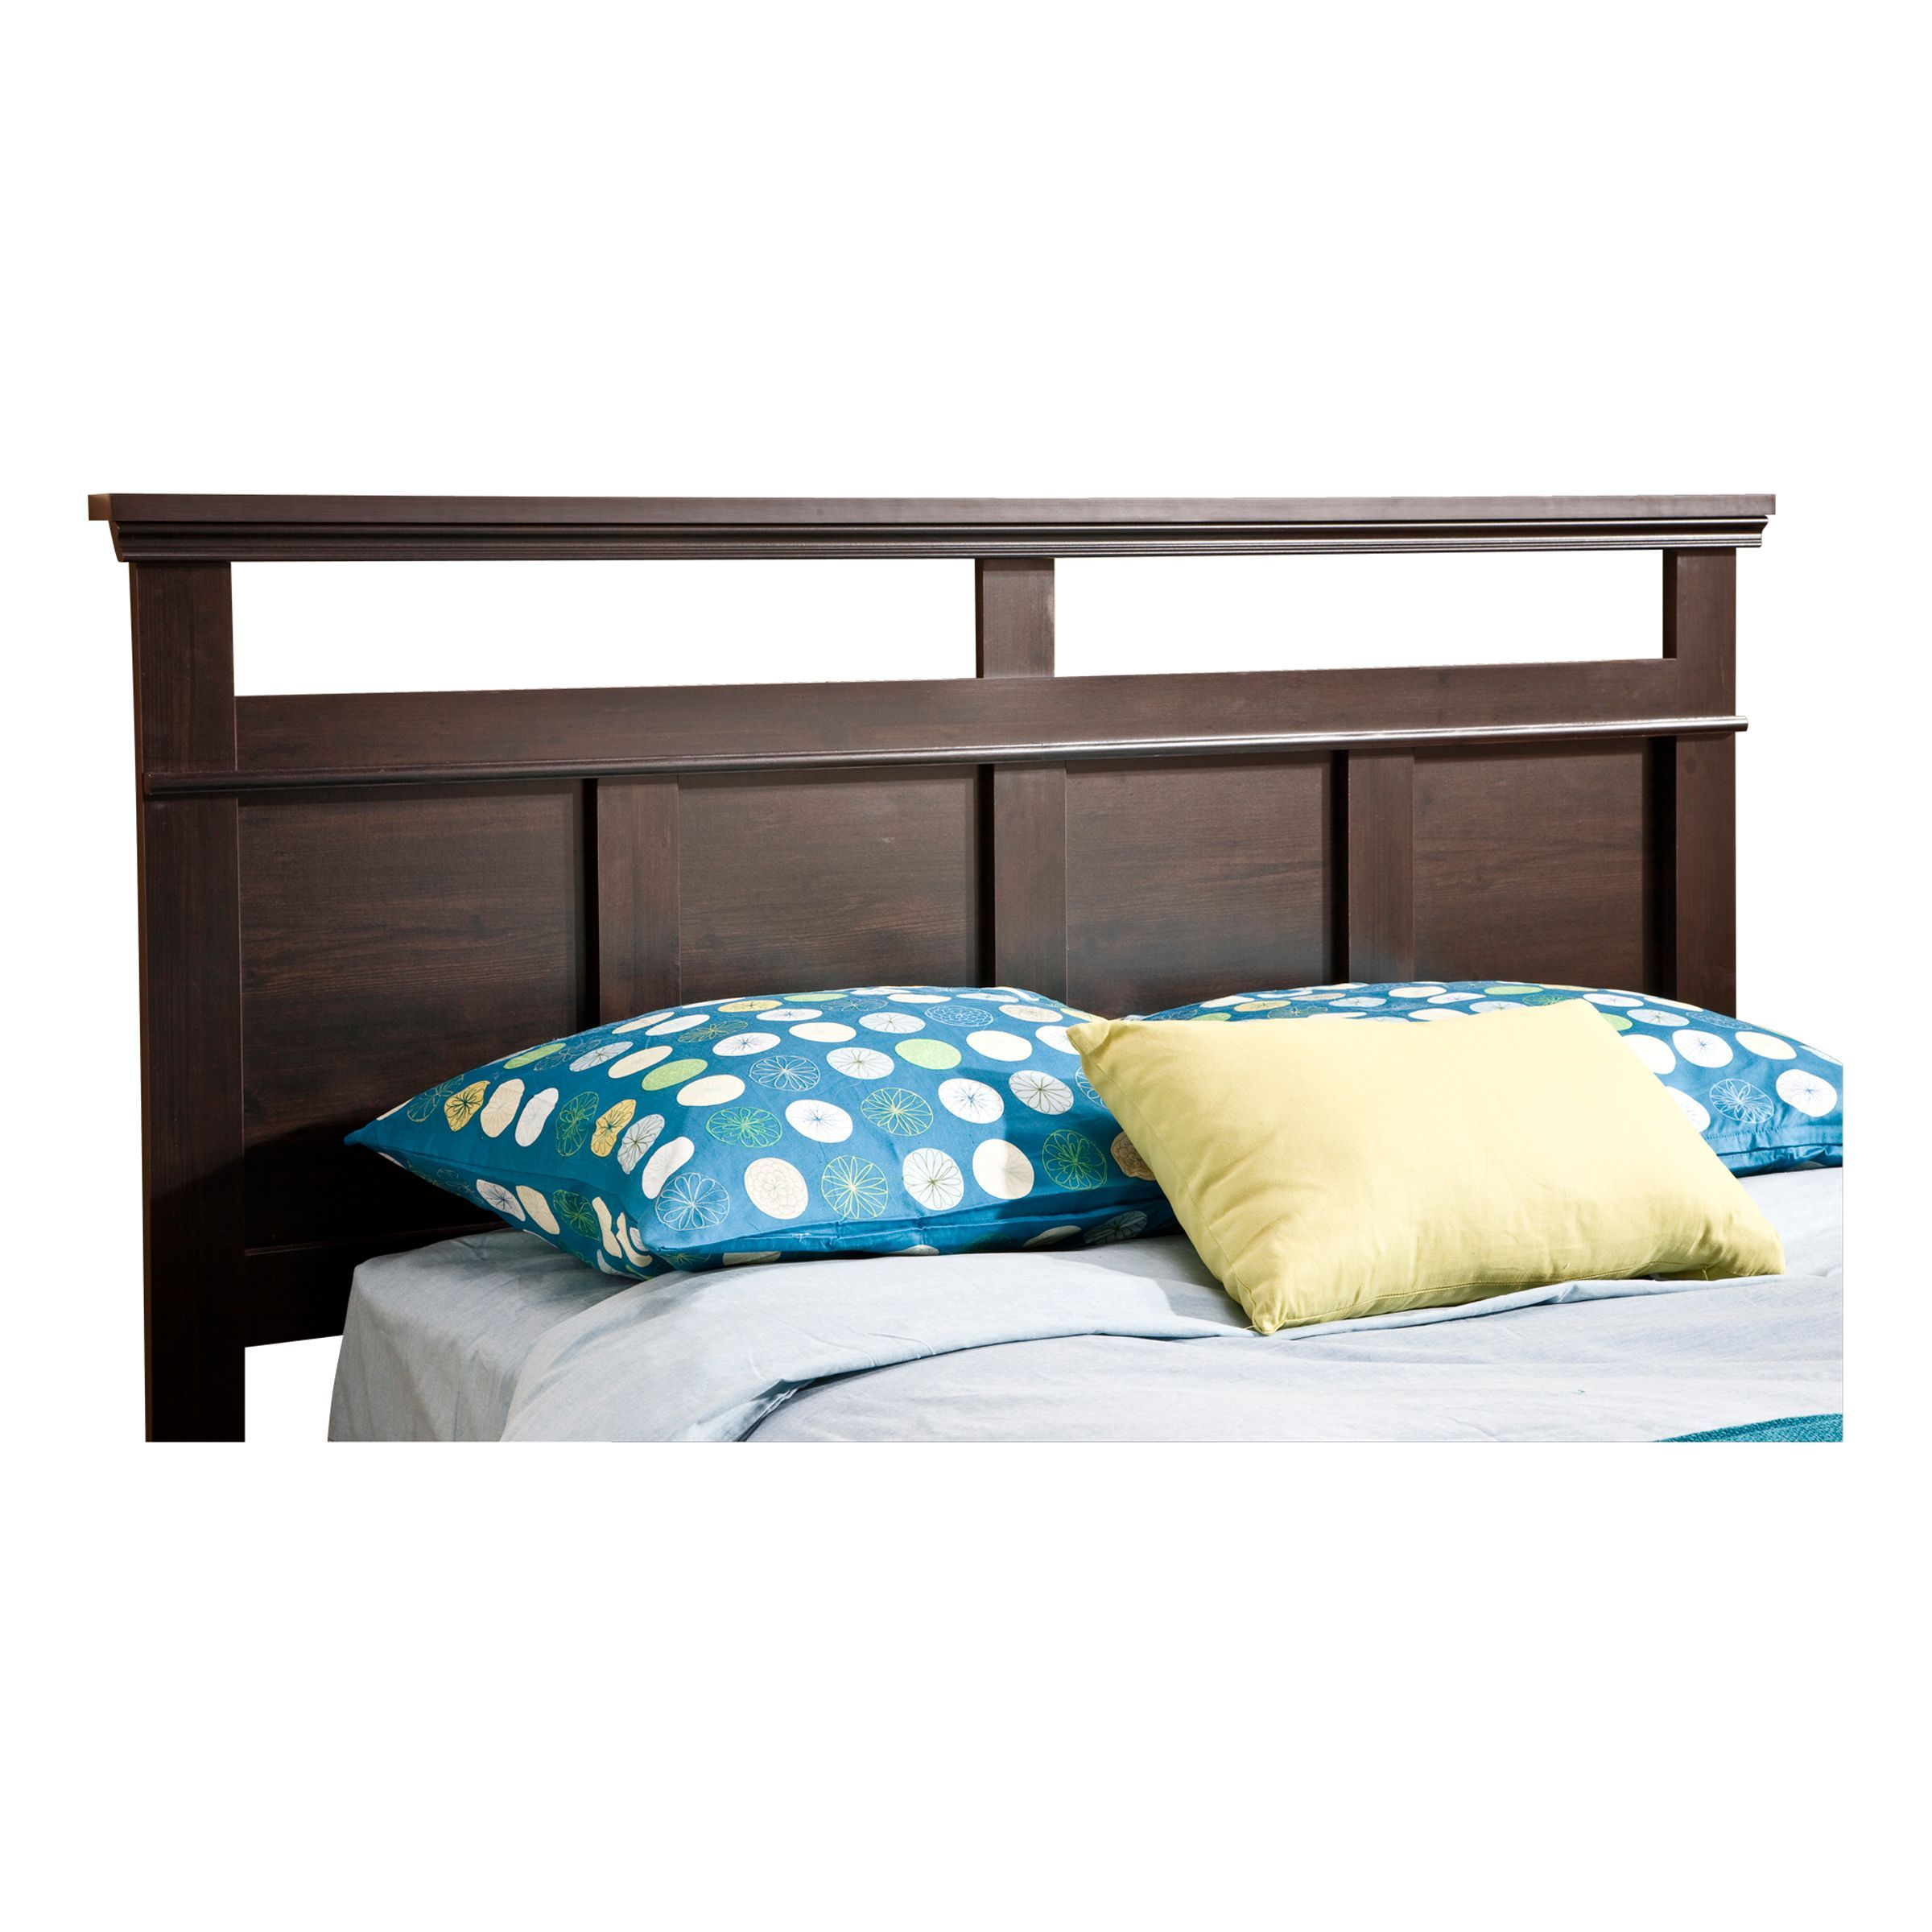 South Shore Versa Collection Full Queen Headboard Ebony Black